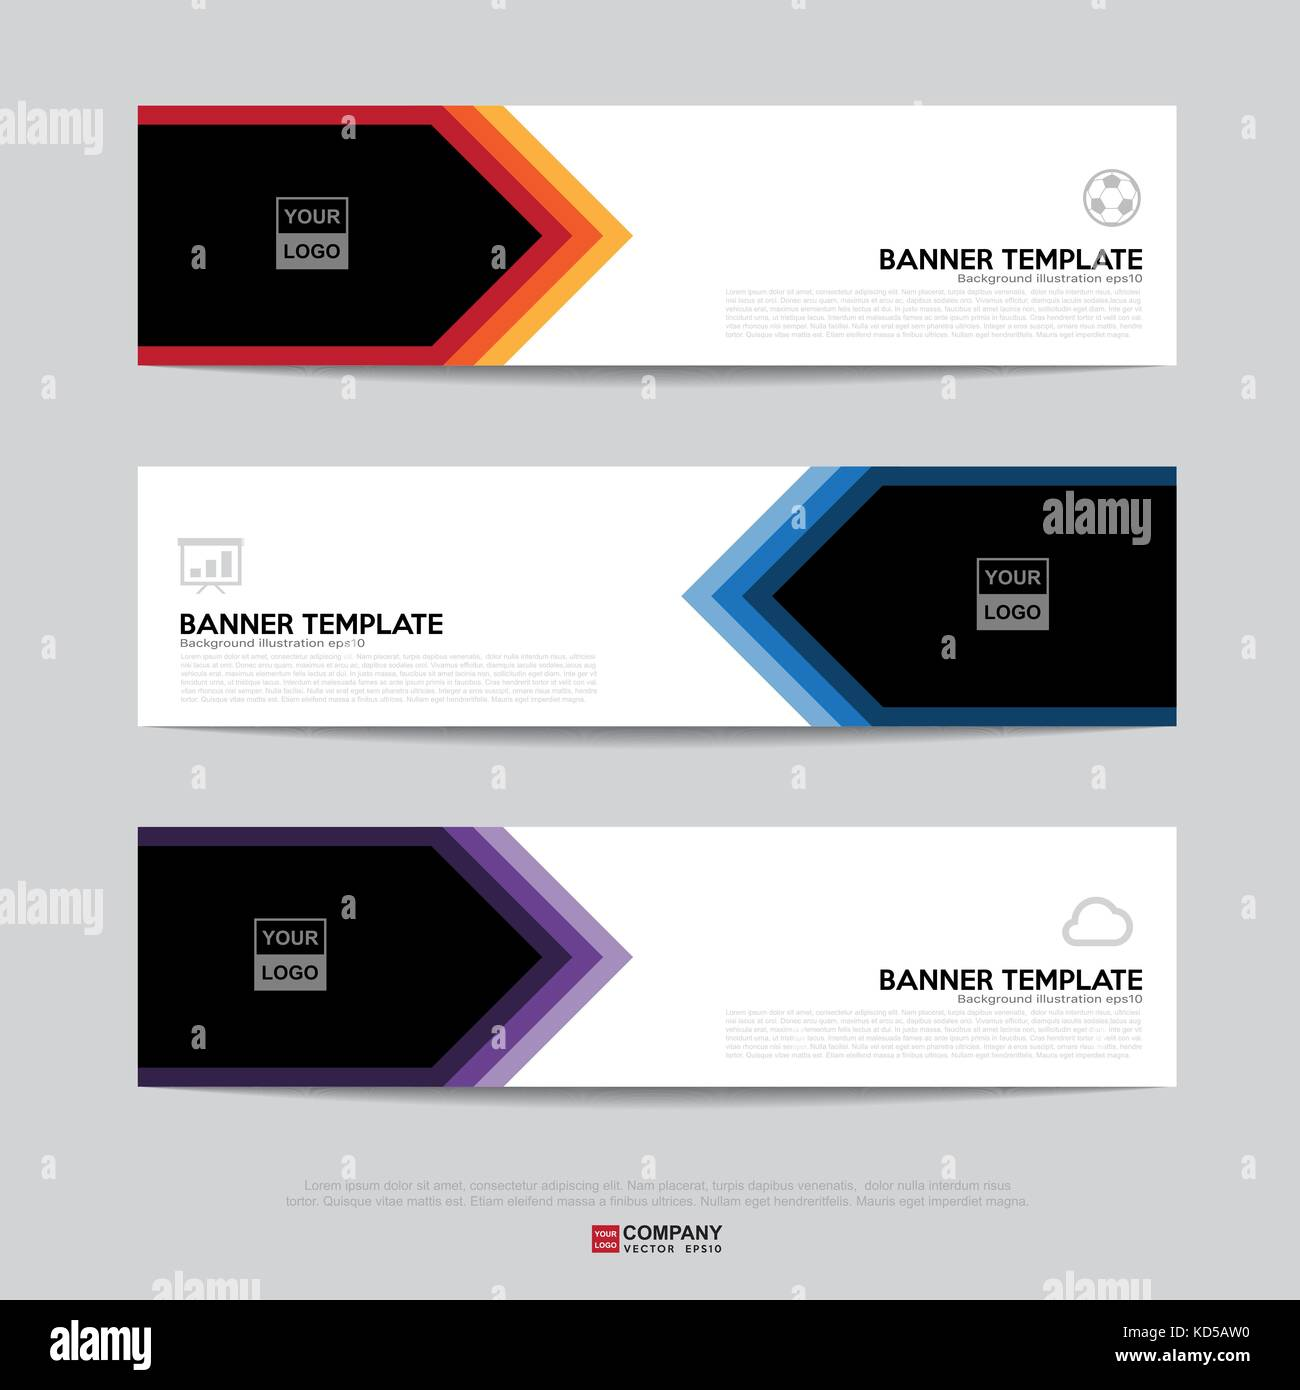 Design of flyers banners brochures and cards templatebanner design of flyers banners brochures and cards templatebanner design for business presentationheader templatebanner for web template accmission Images